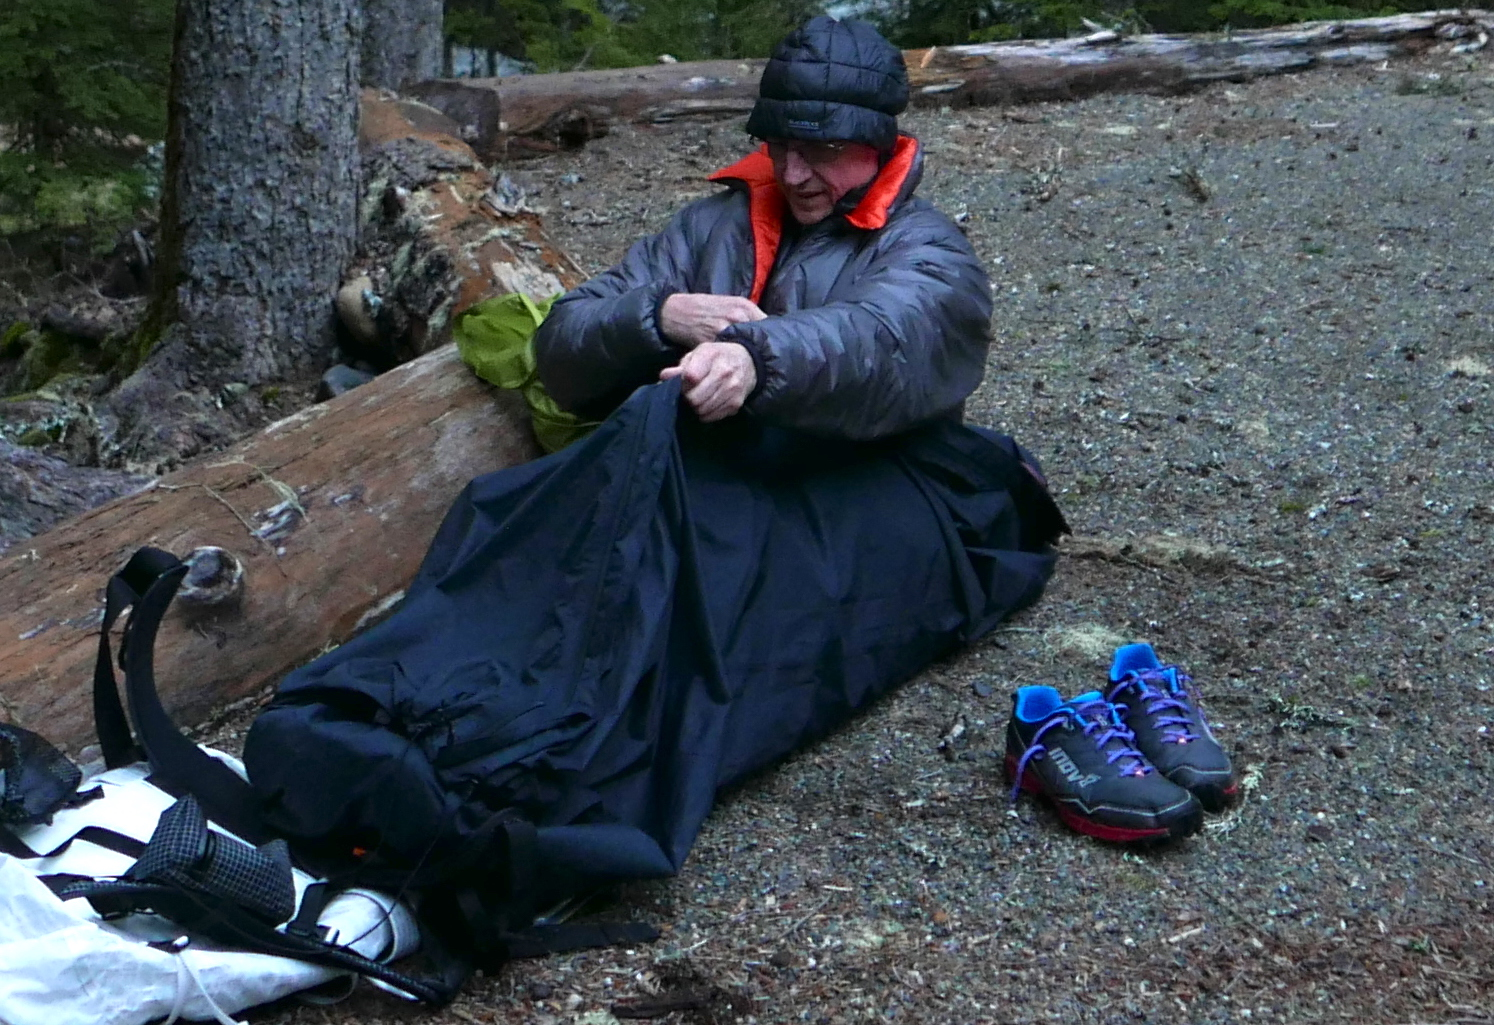 The OR Wilderness Cover in use as a fully enclosed bivy bag